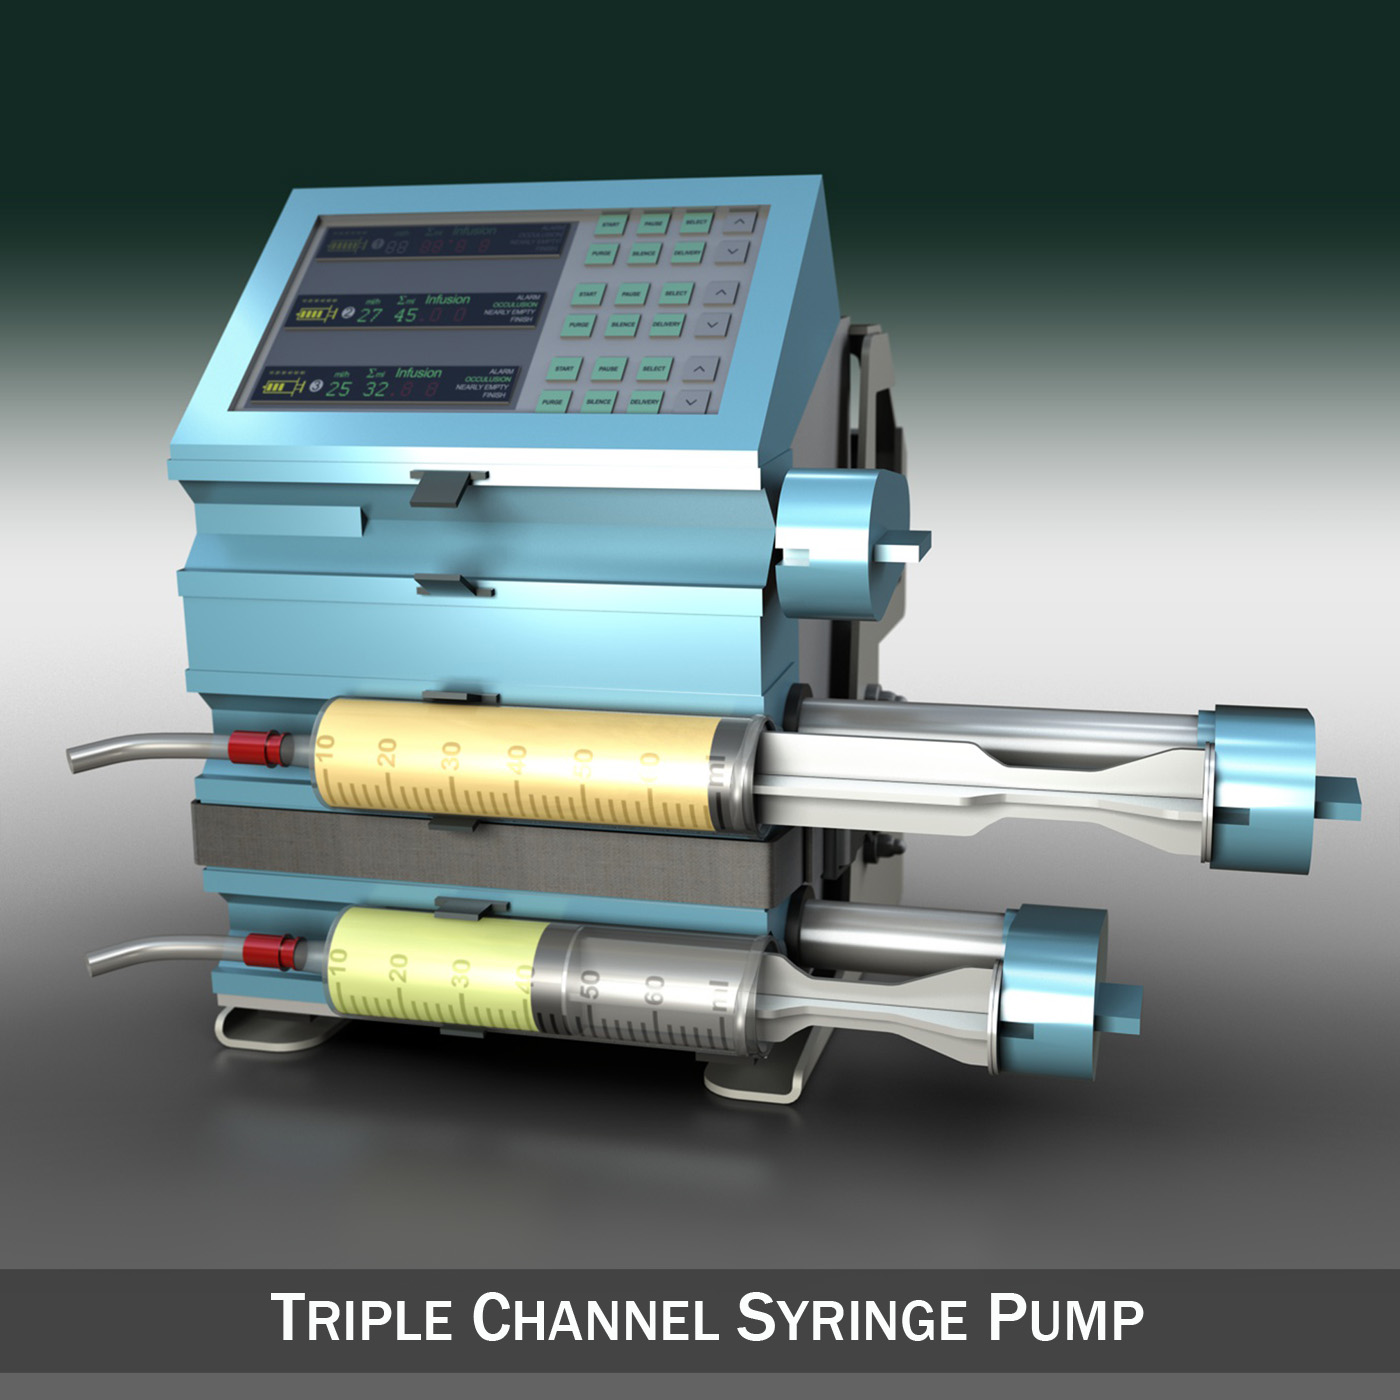 triple channel syringe pump 3d modelo 3ds c4d lwo obj 264198